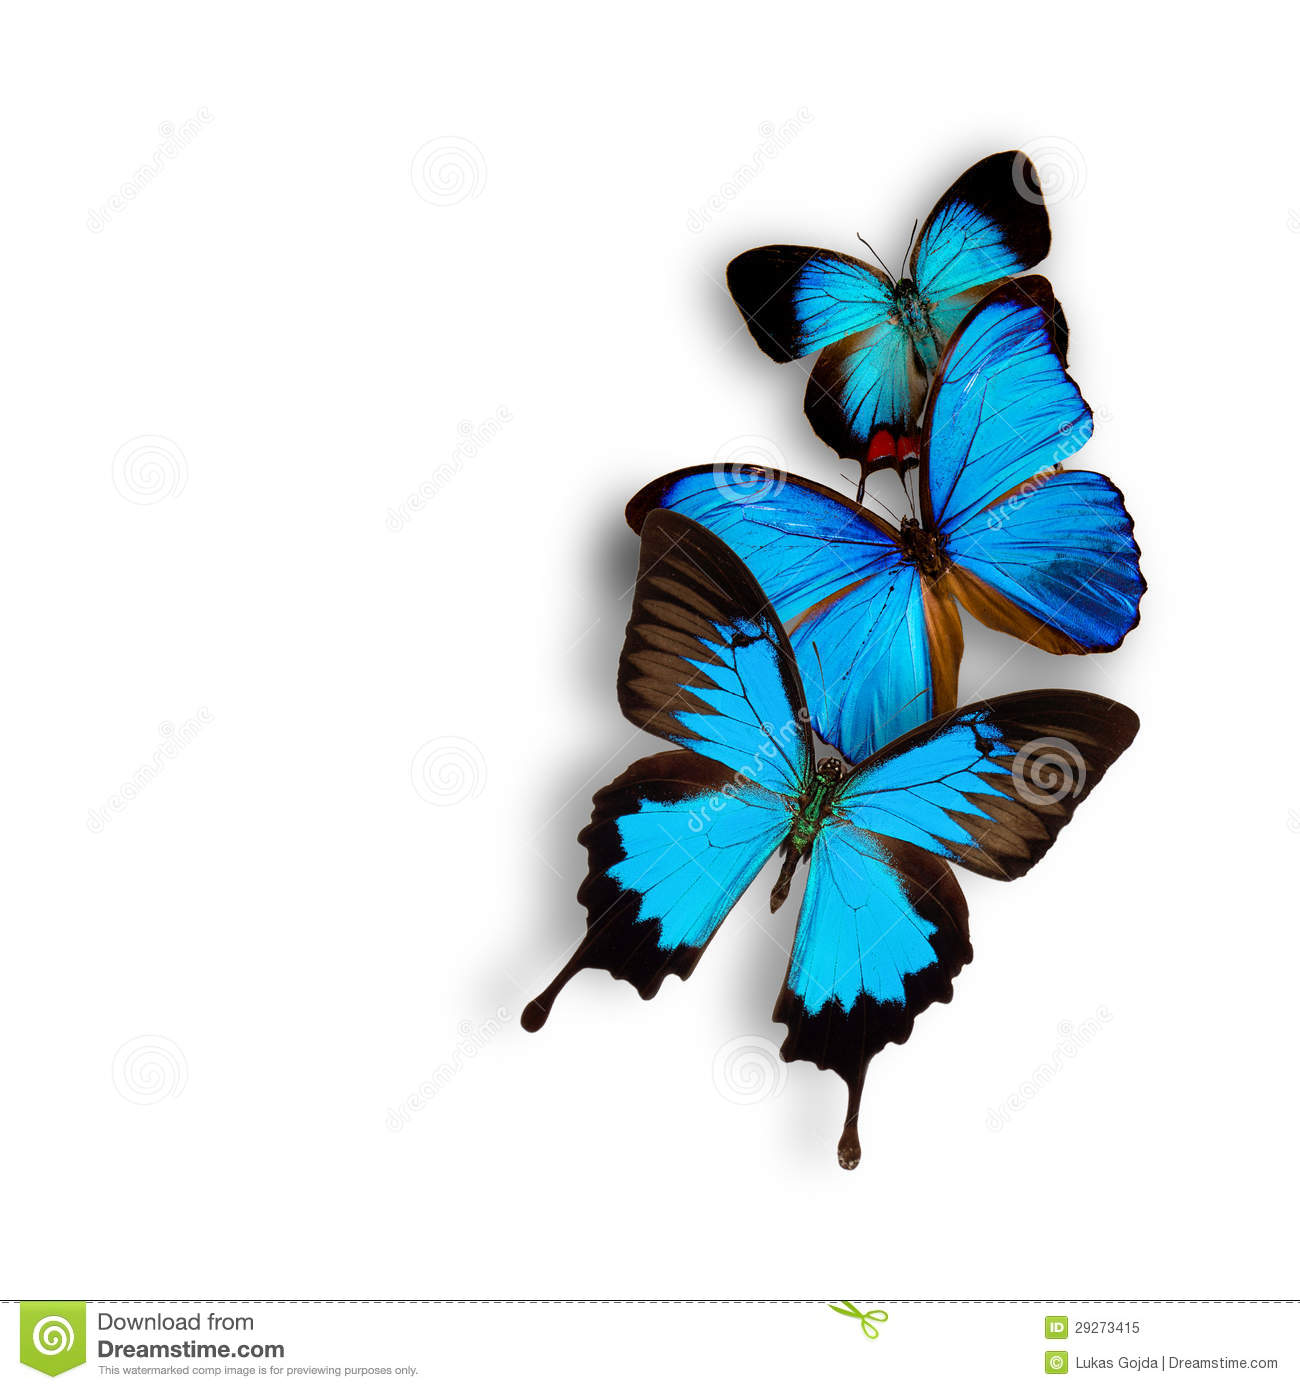 Exotic Butterflies Royalty Free Stock Photo - Image: 29273415